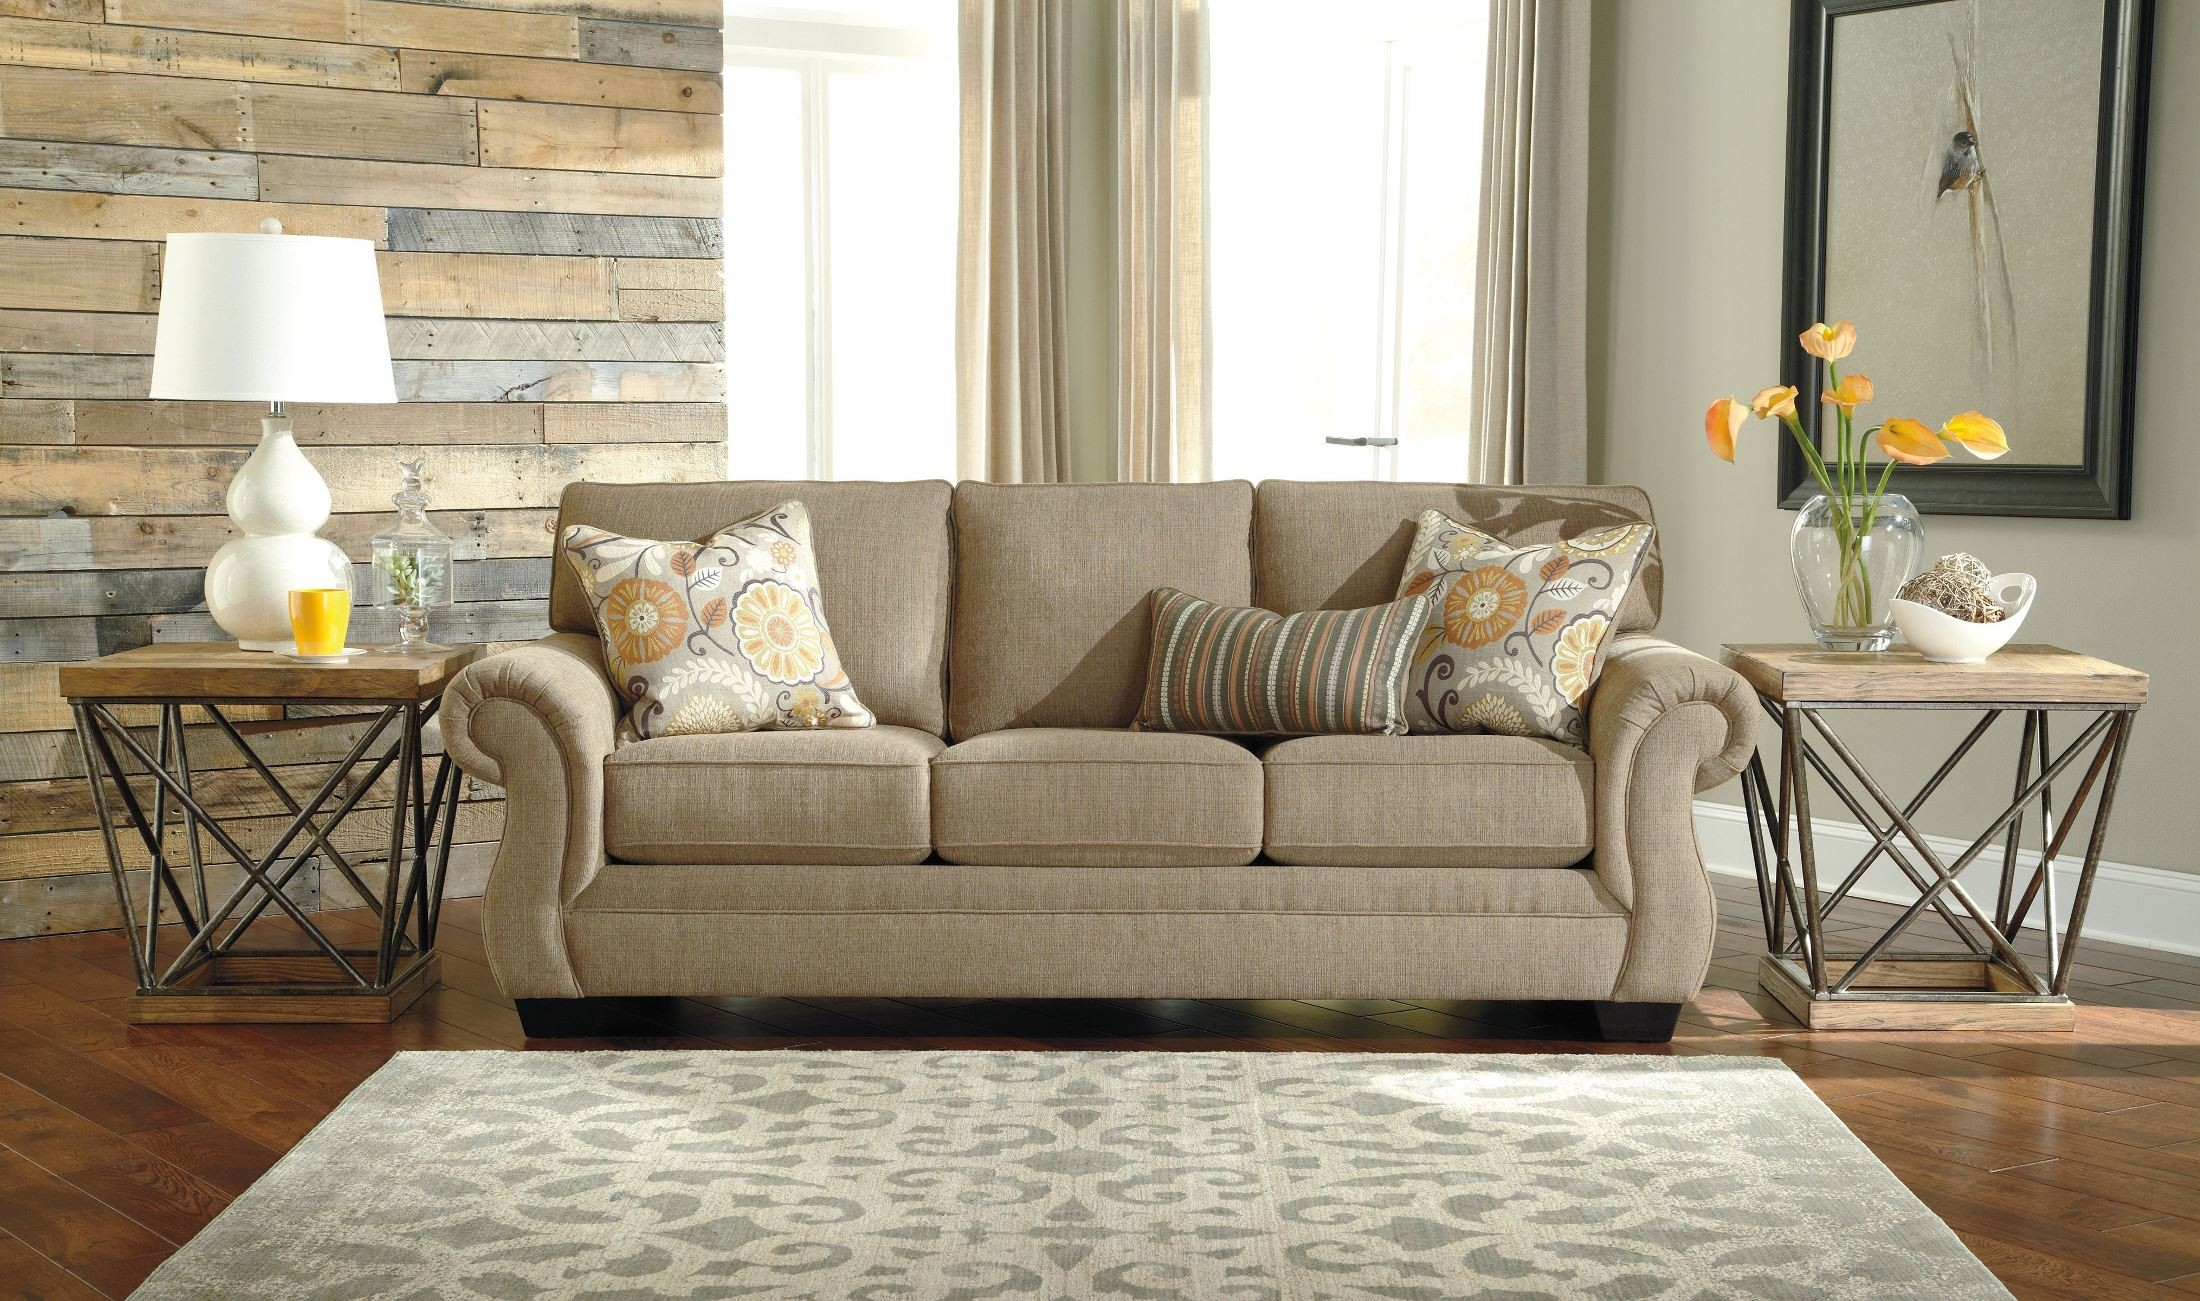 Tailya Barley Browns Sofa From Ashley 4770038 Coleman